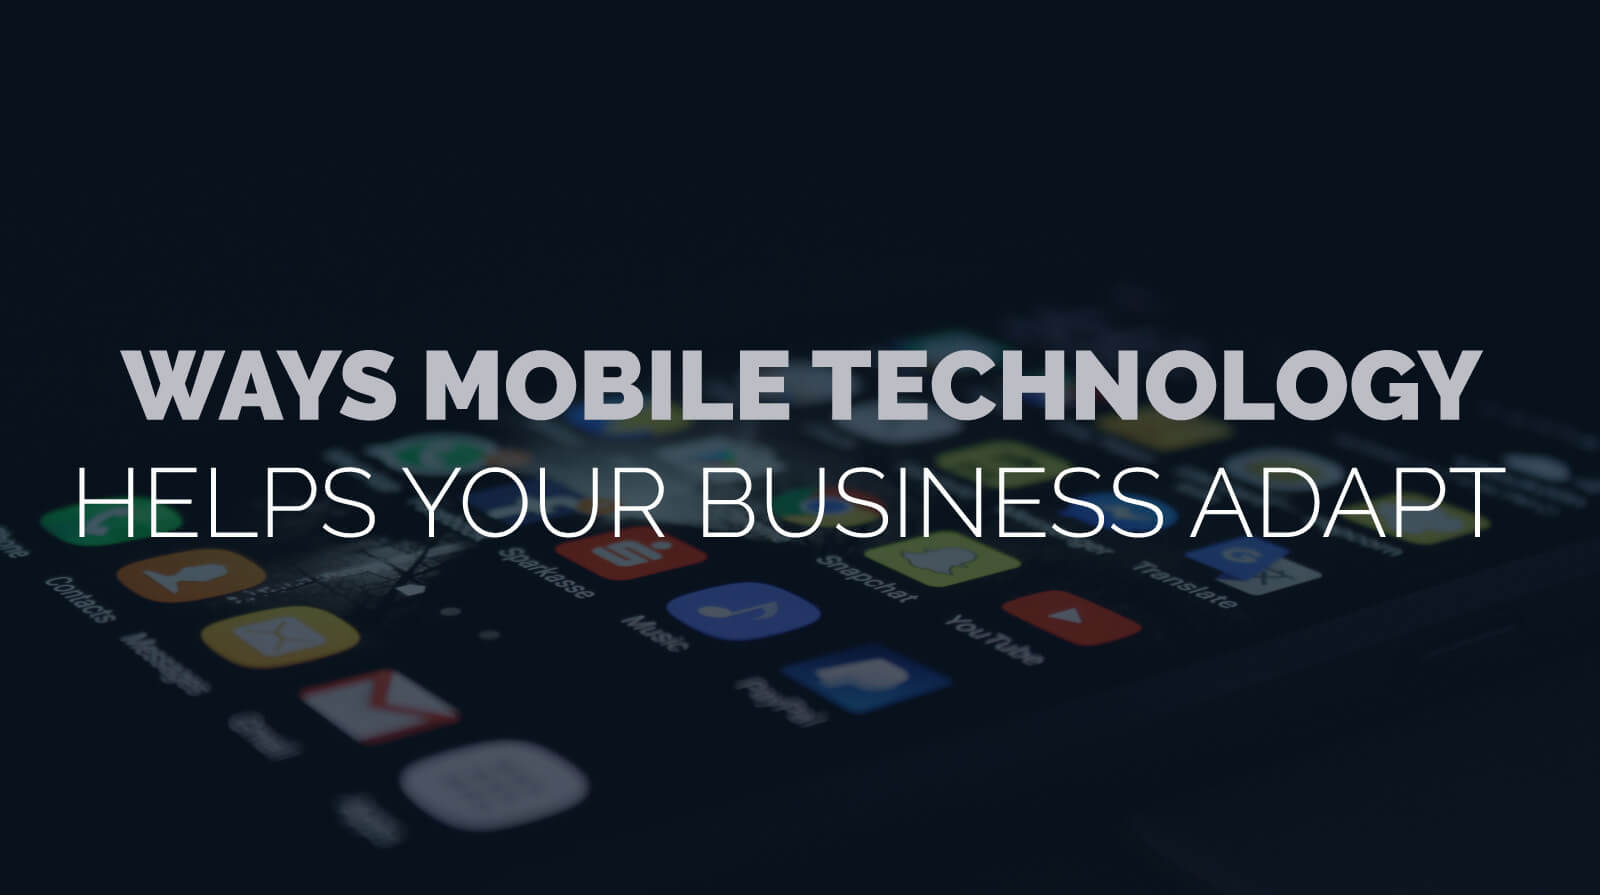 Managed IT Ann Arbor mobile technology